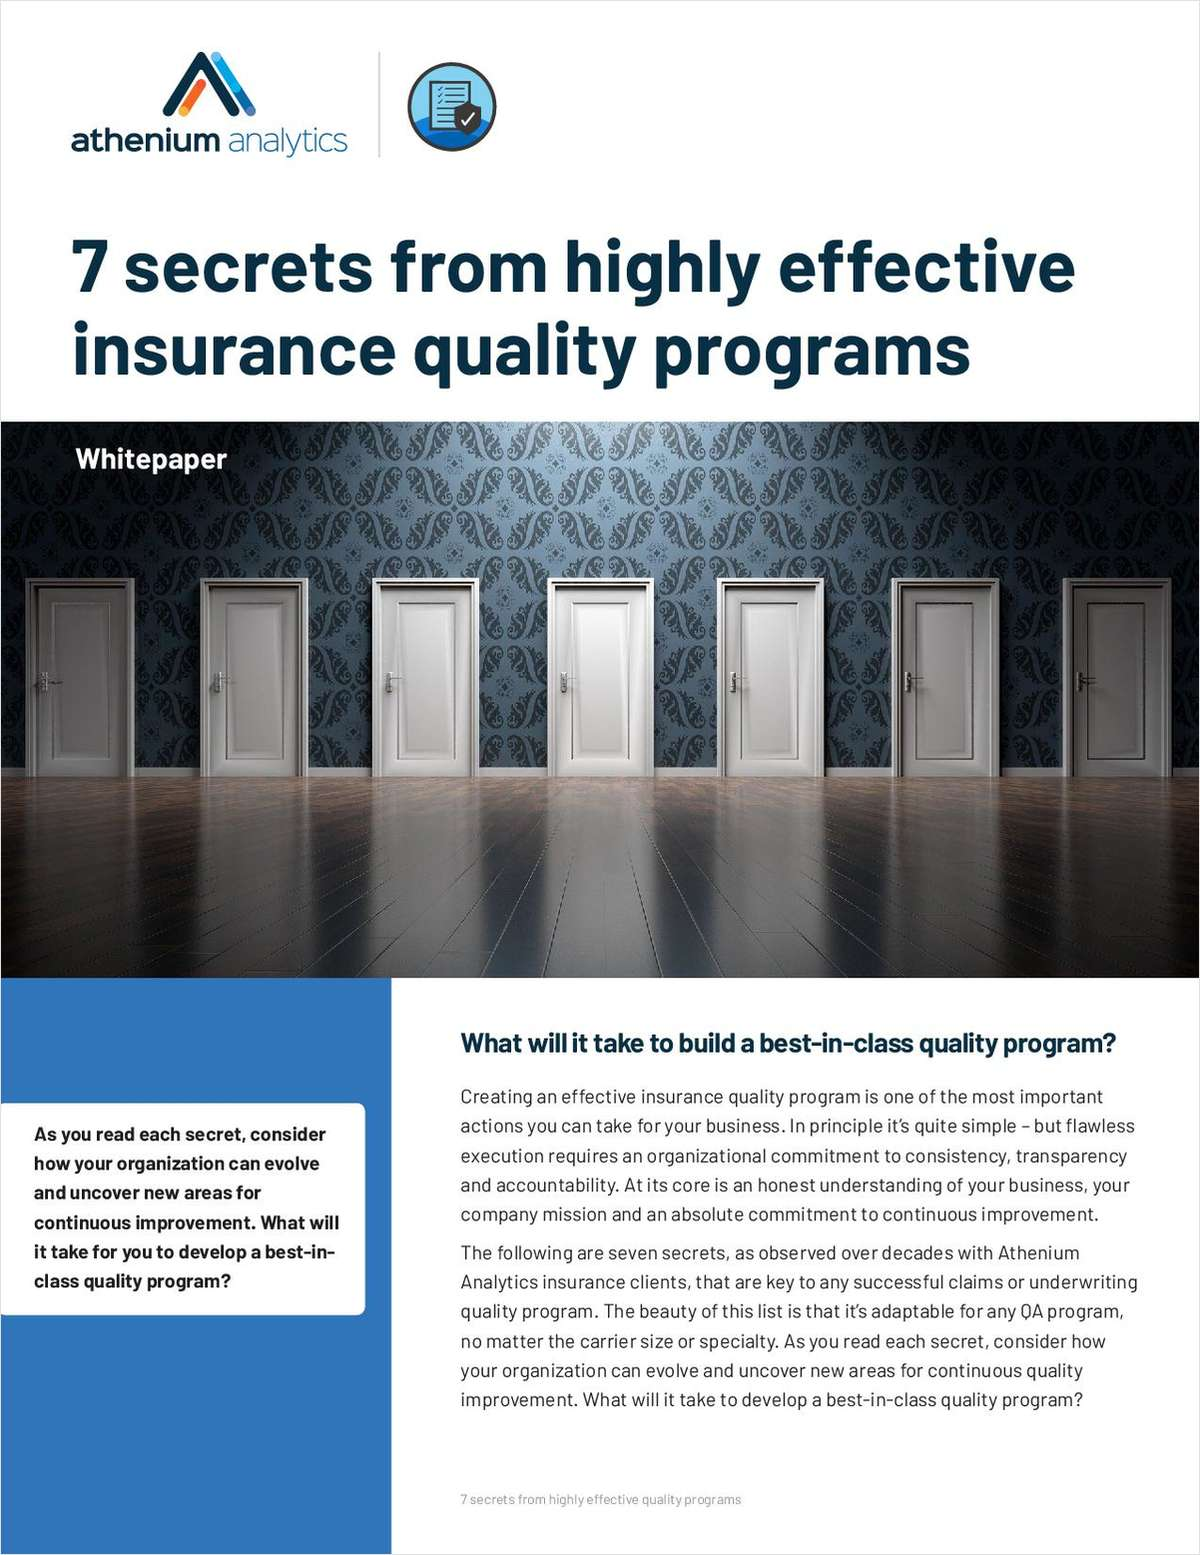 7 Secrets from Highly Effective Insurance Quality Programs